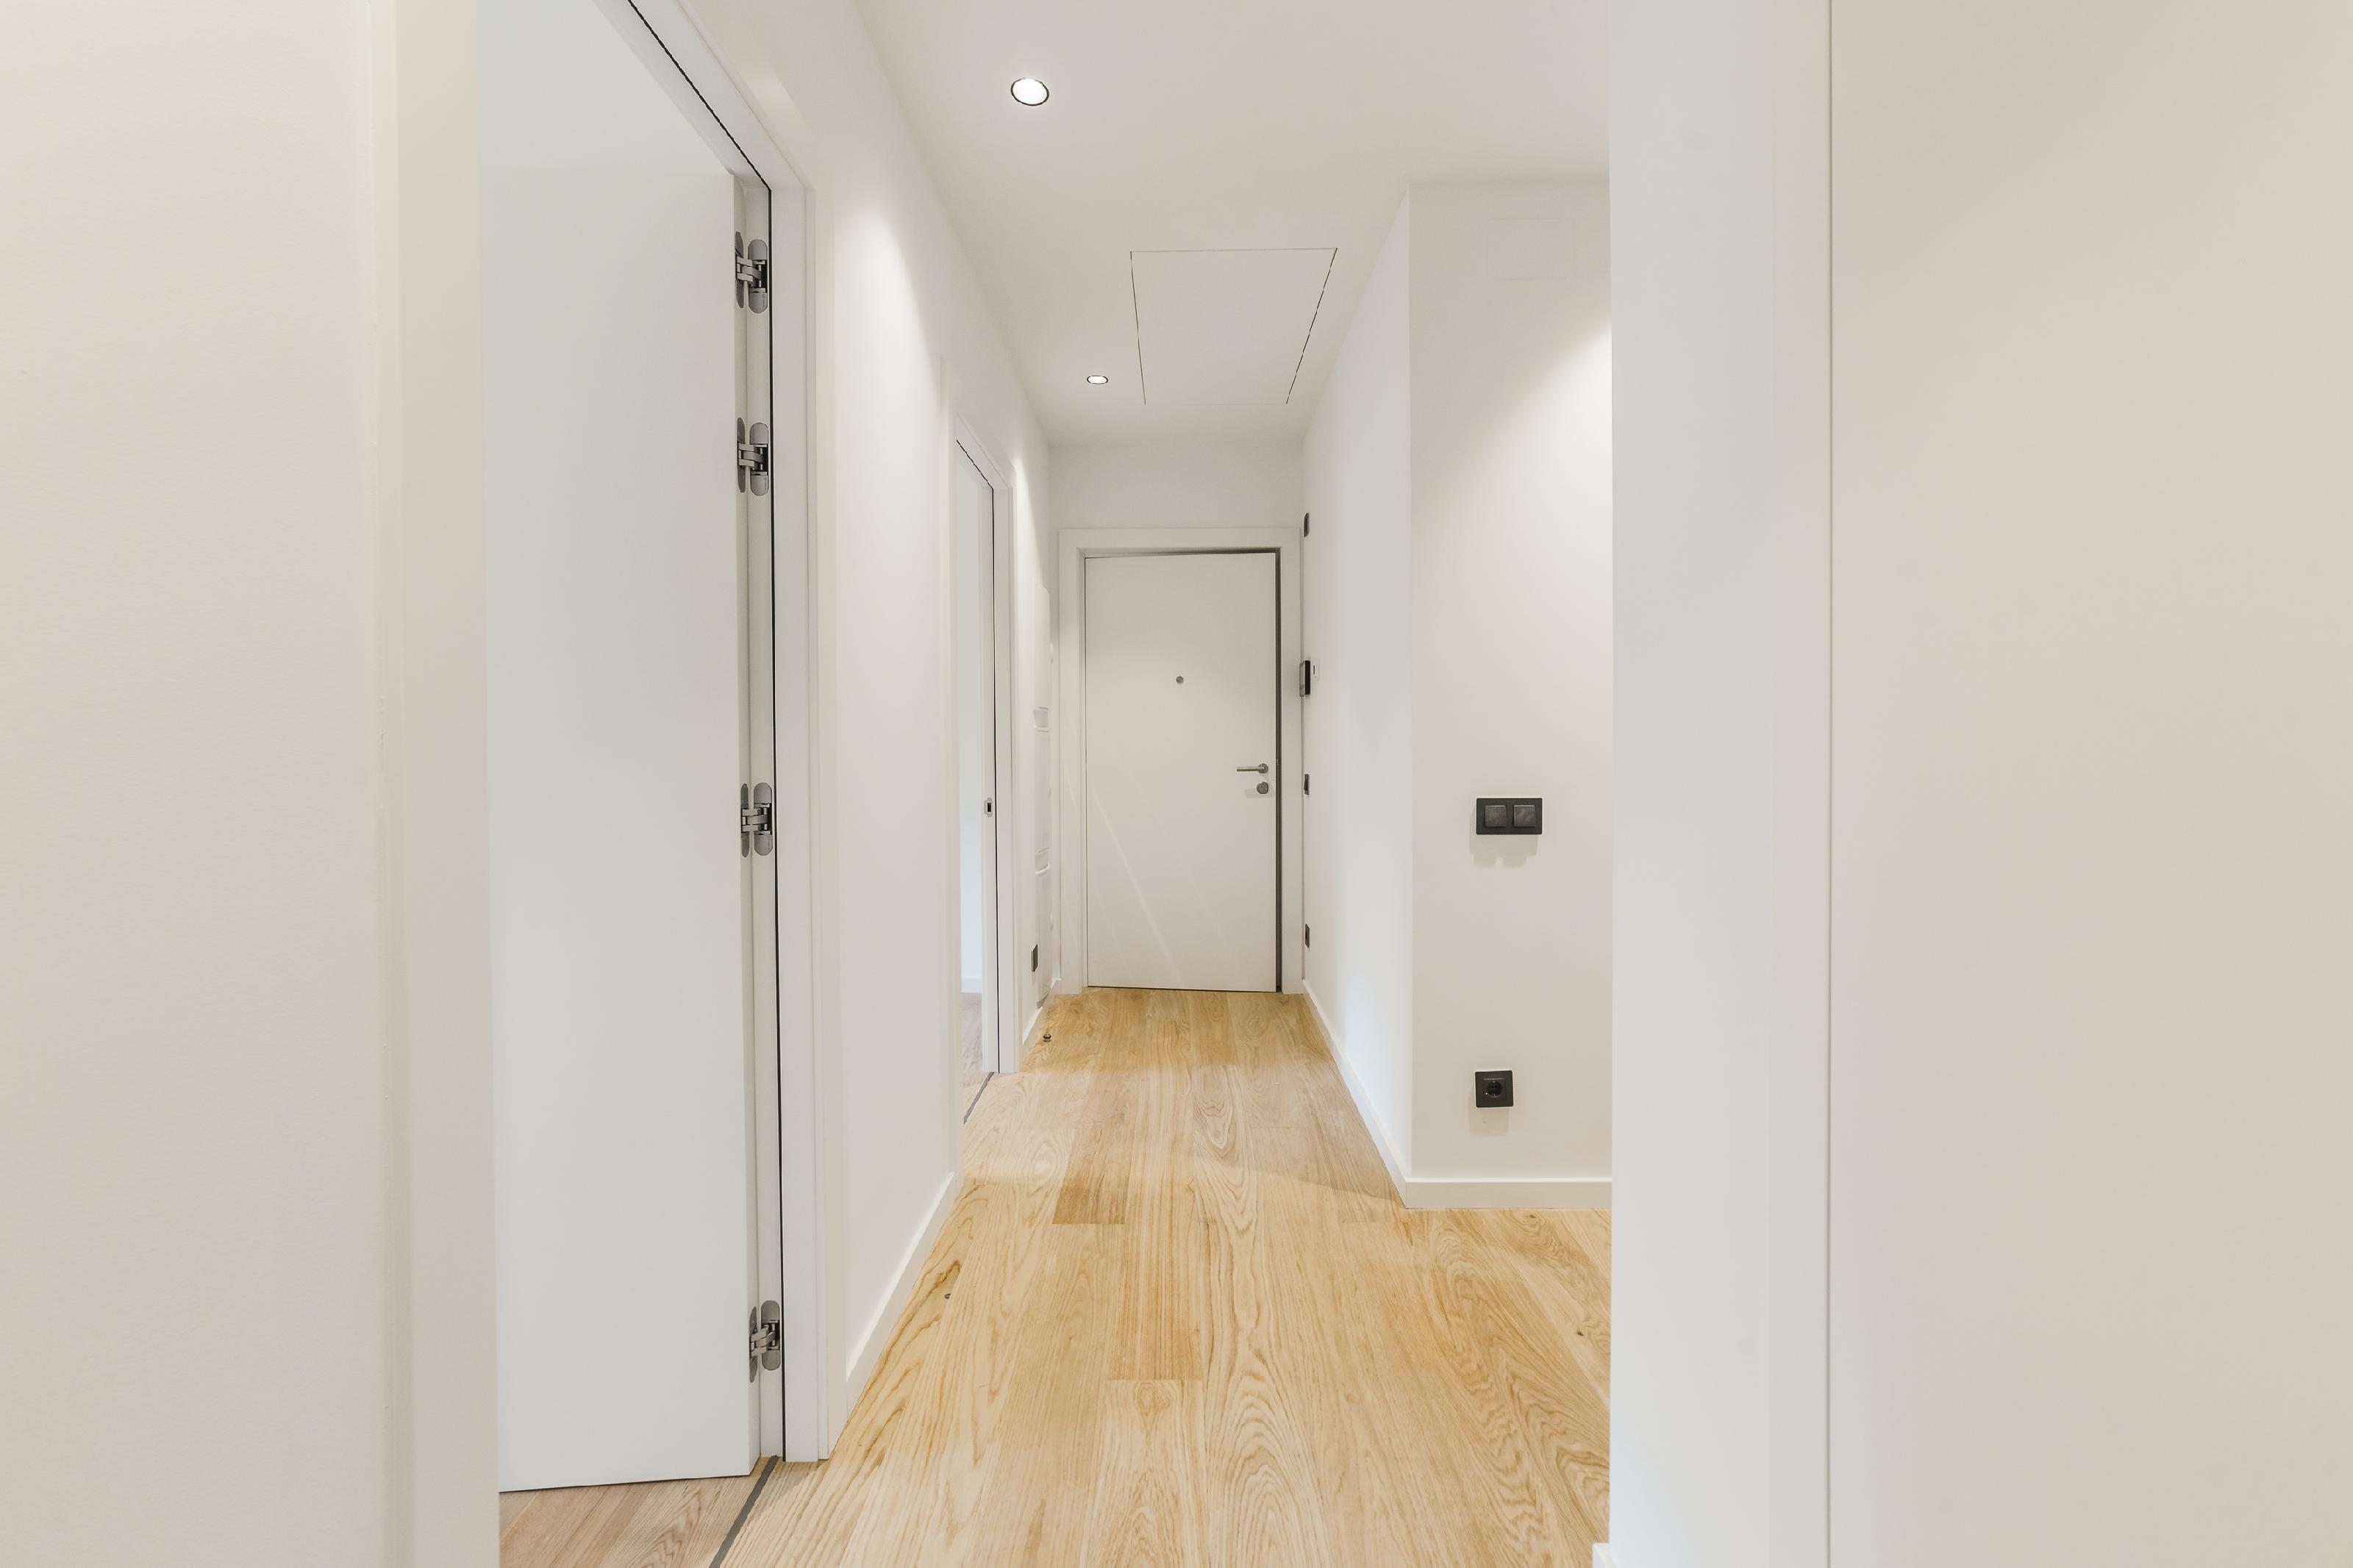 182176 Apartment for sale in Eixample, Old Left Eixample 15